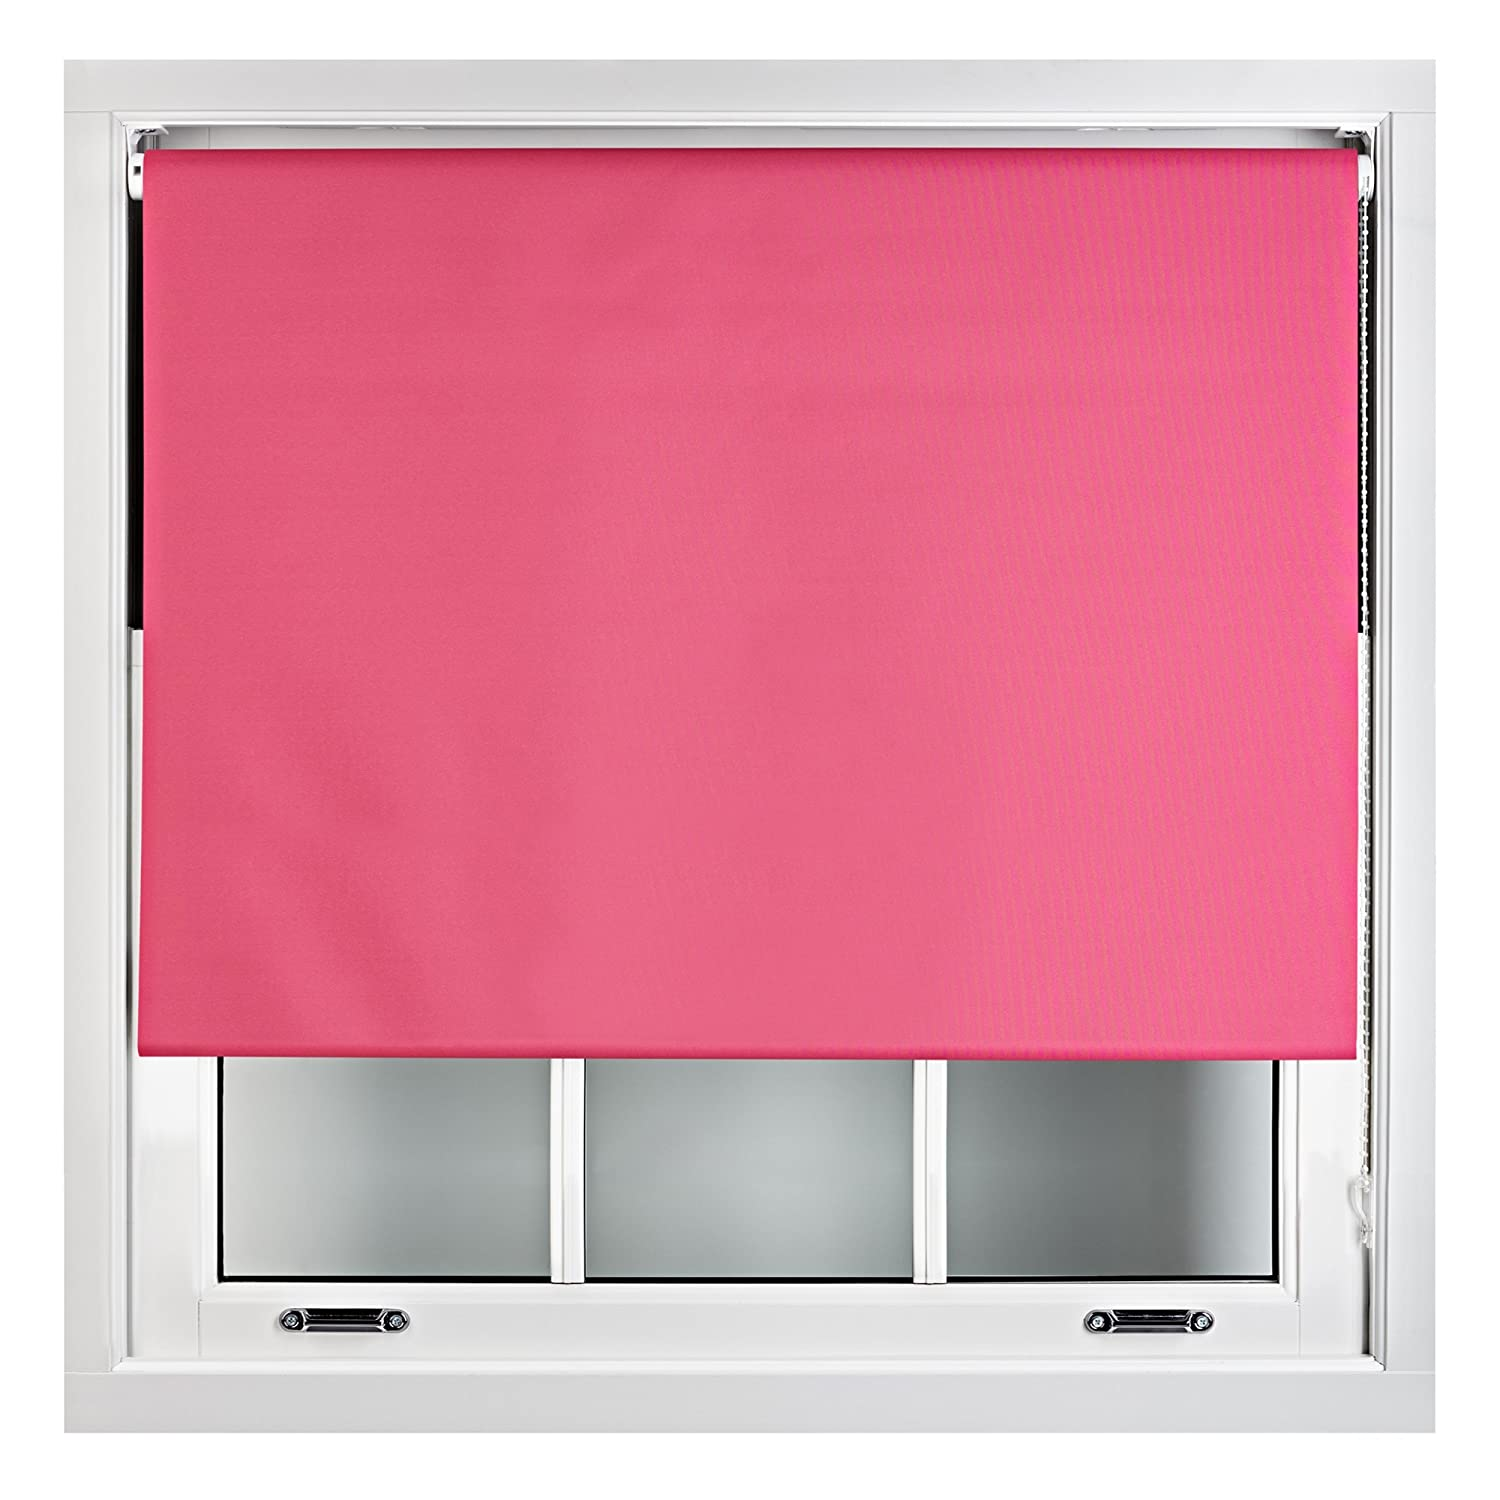 Blackout Roller Blind in Different Colours & Sizes - Trimmable - Black 60cm x 165cm Furnished 60BLKBO__1